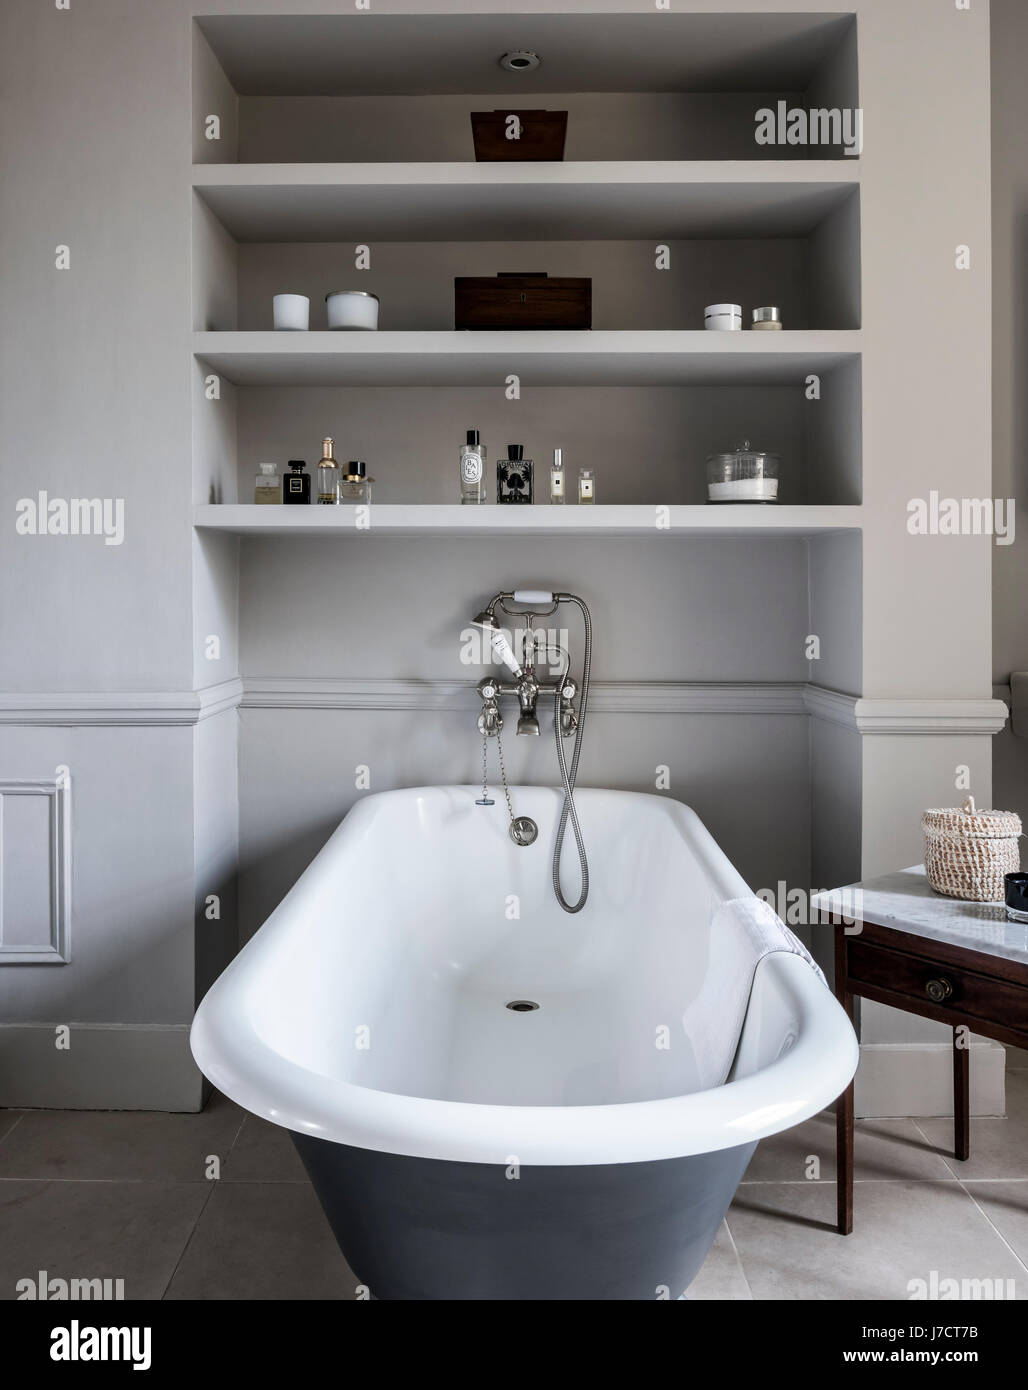 Salle De Bain Privative Signification ~ order of the bath photos order of the bath images alamy